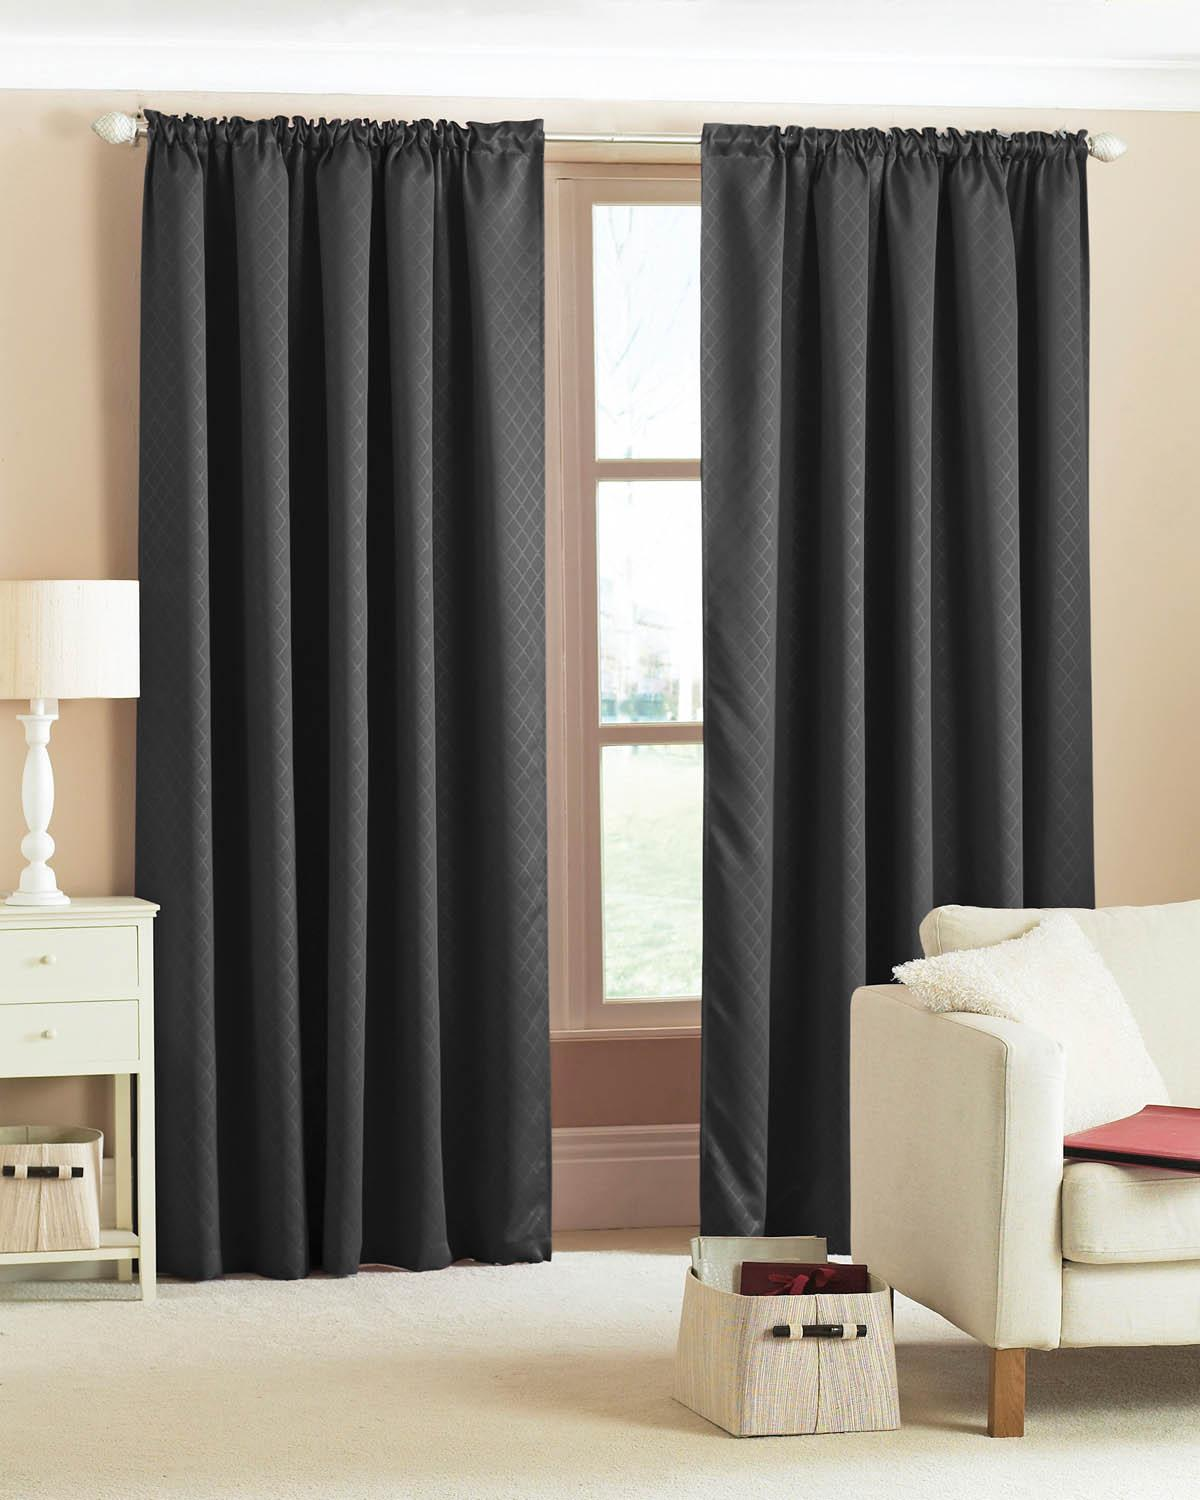 Lovely Diamond Woven Blackout Curtains